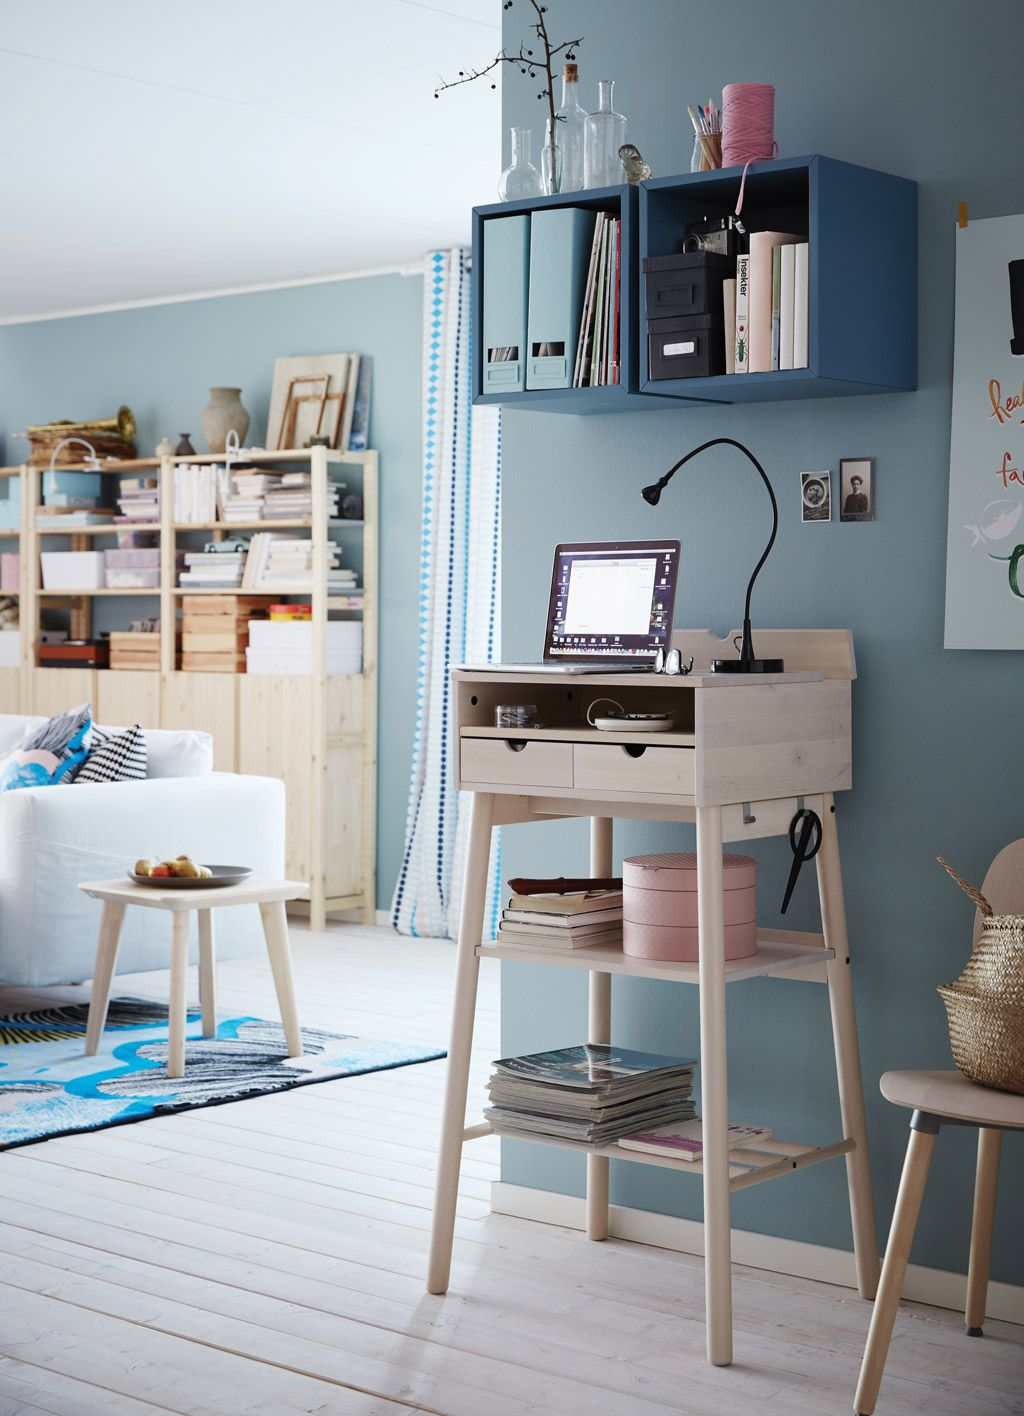 A Corner In The Livingroom With A Standing Desk Where You Can Read Your  E Mails, Pay Your Bills And Keep Your Keys.